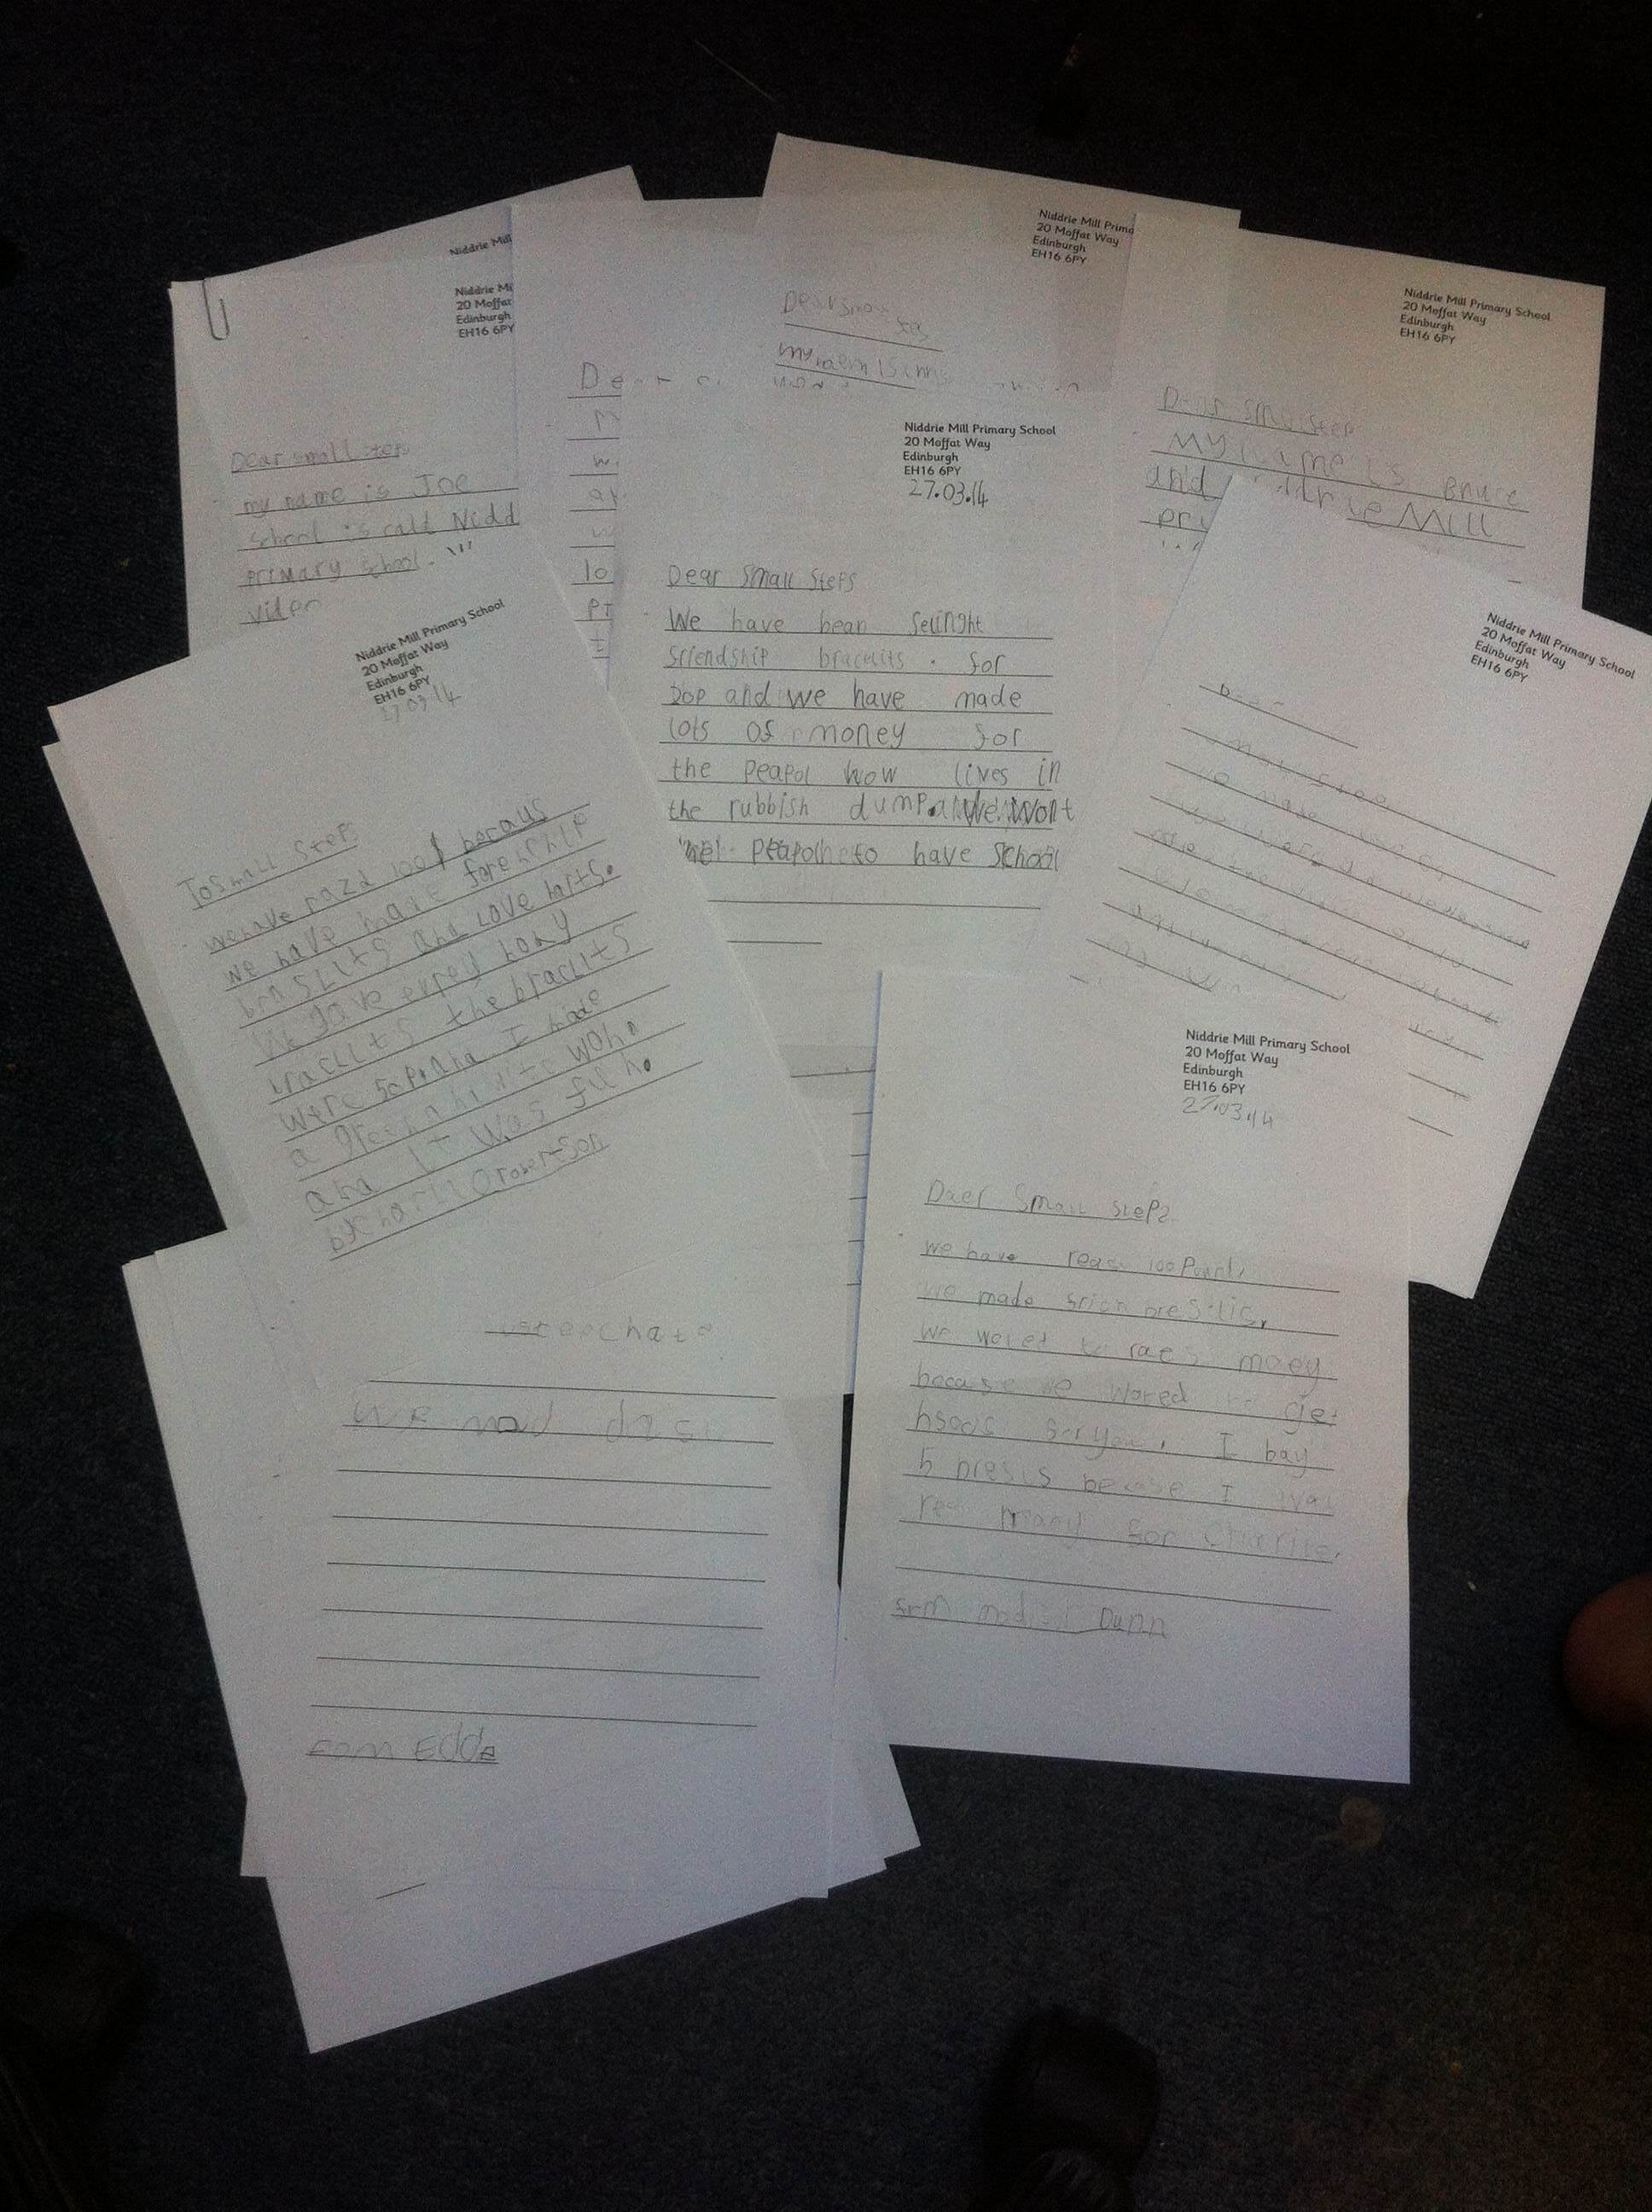 Hand written letters from the children in classes P2a & P2b